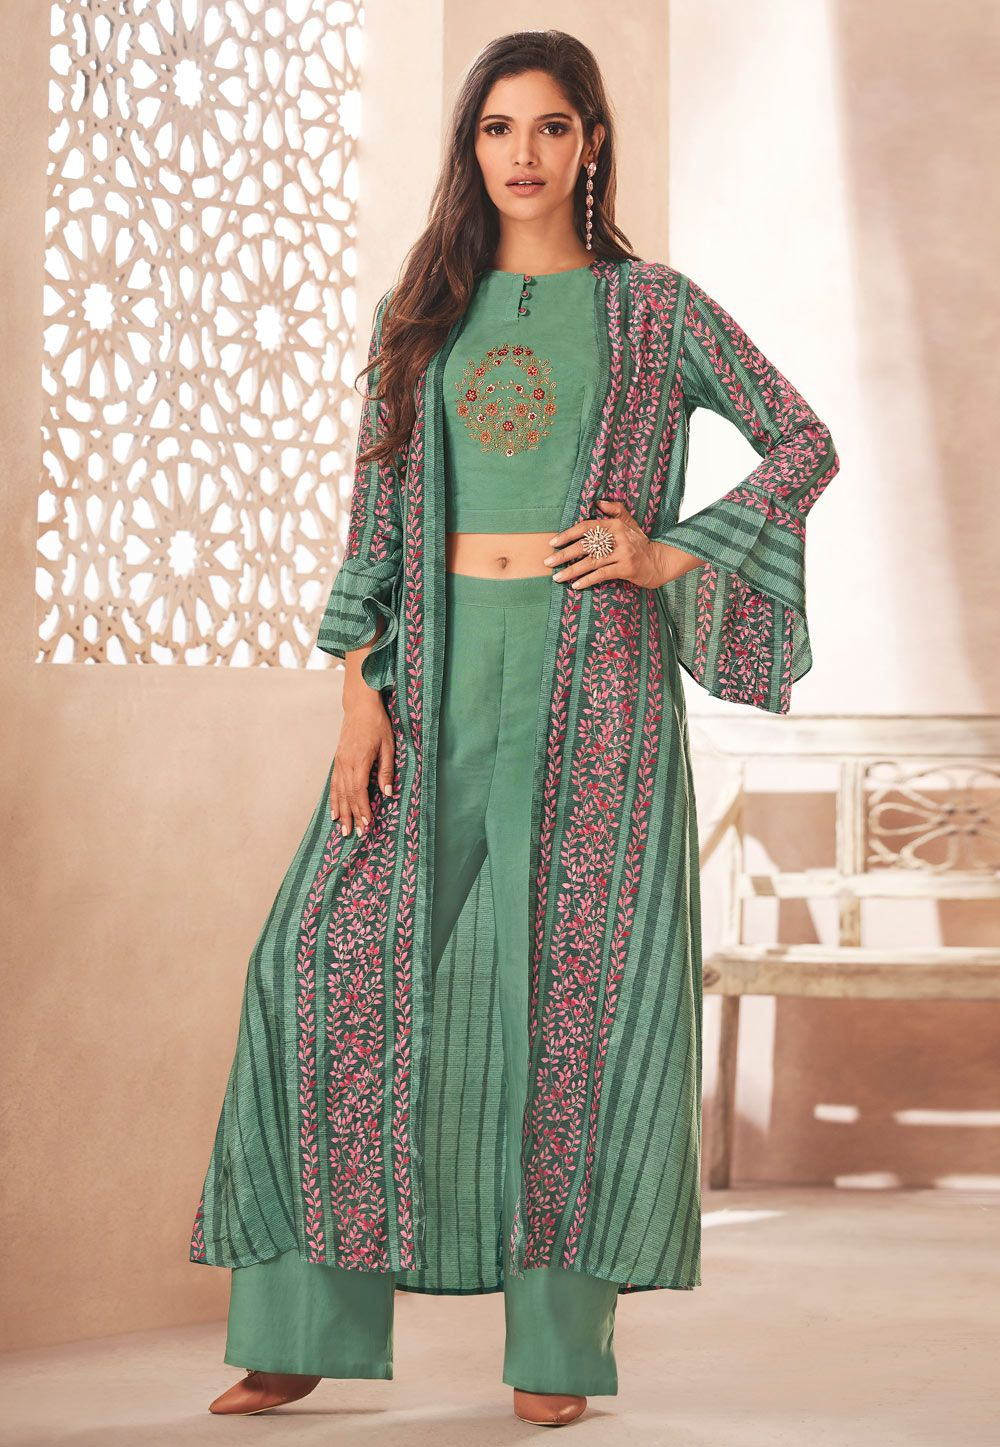 cad973dd655 Buy Sea Green Rayon Readymade Palazzo Suit With Jacket 157562 online at  lowest price from huge collection of salwar kameez at Indianclothstore.com.